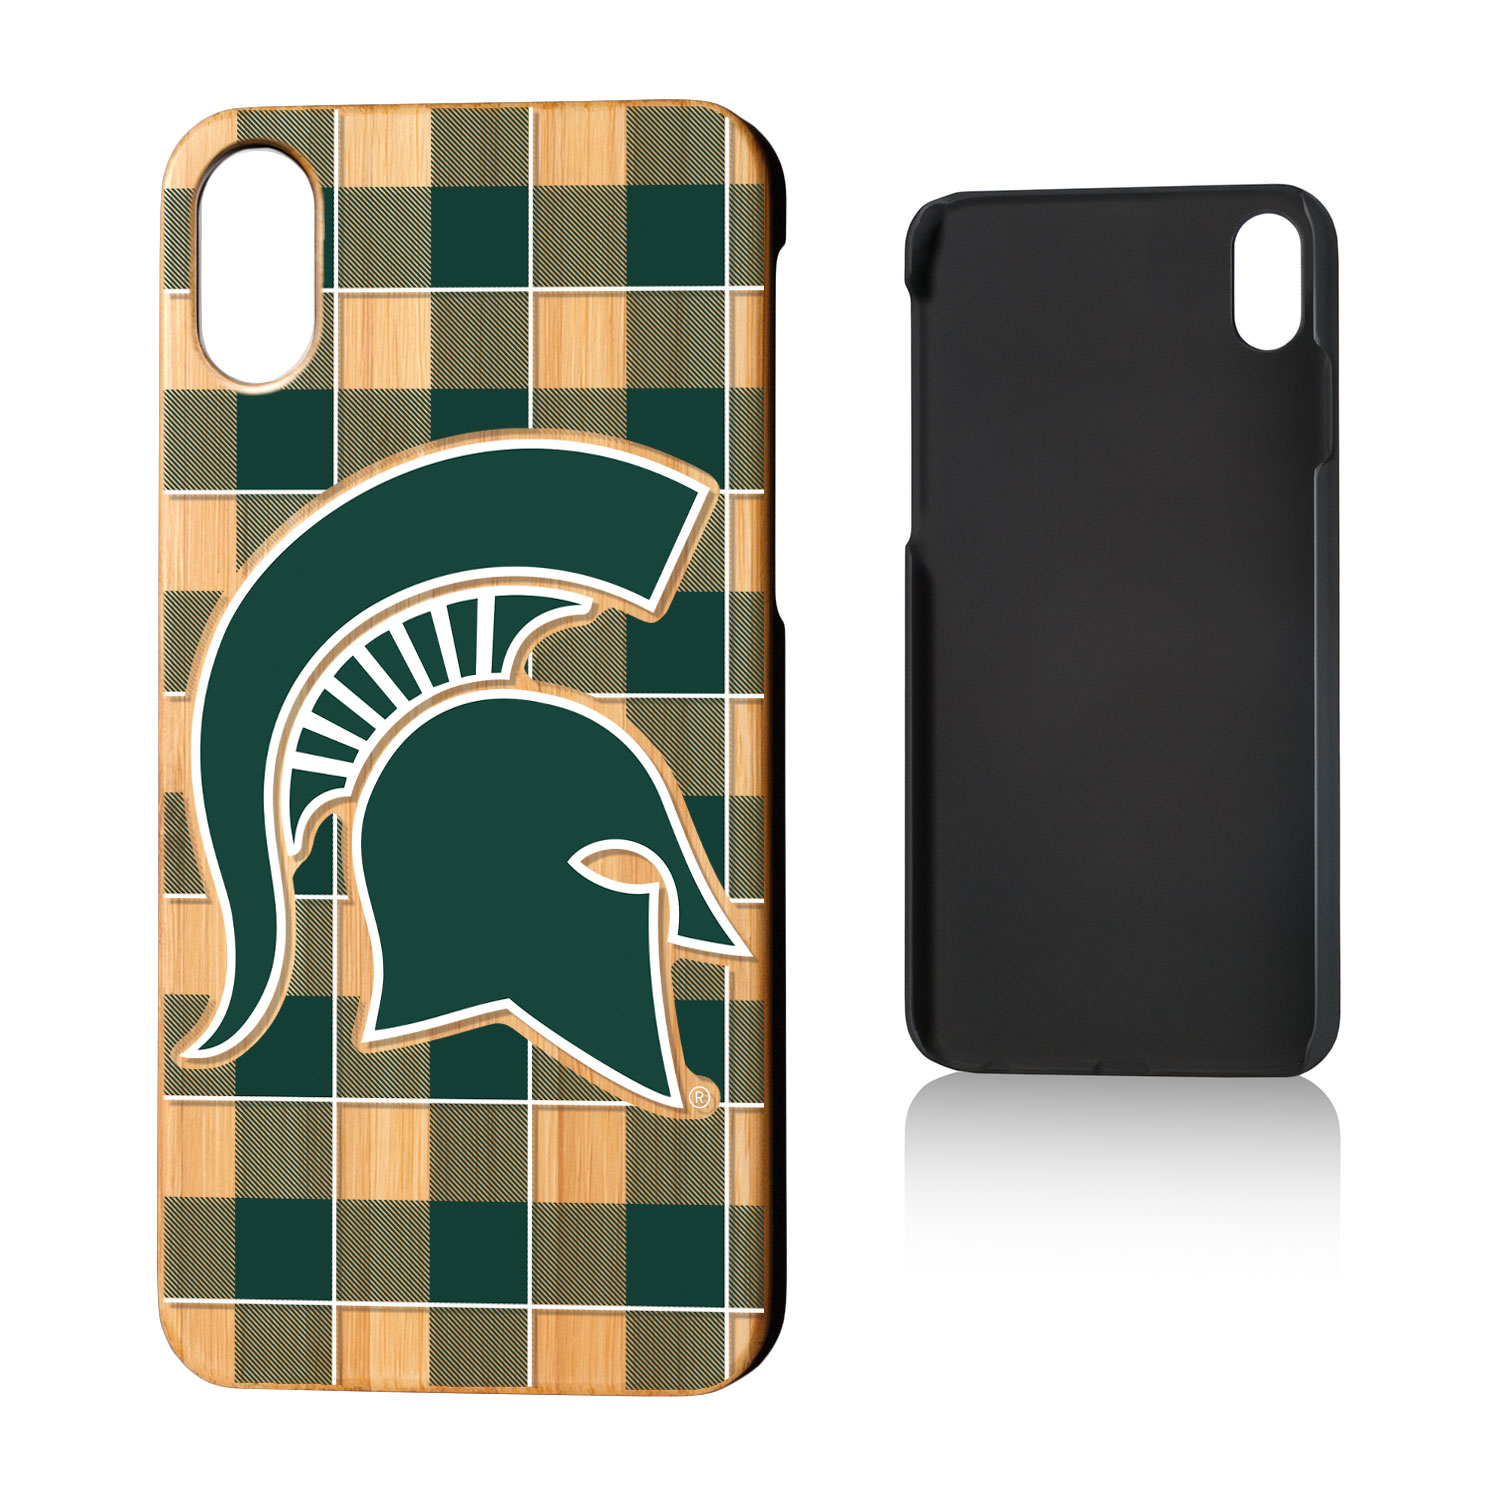 MSU Michigan State Spartans Plaid Bamboo Case for iPhone X